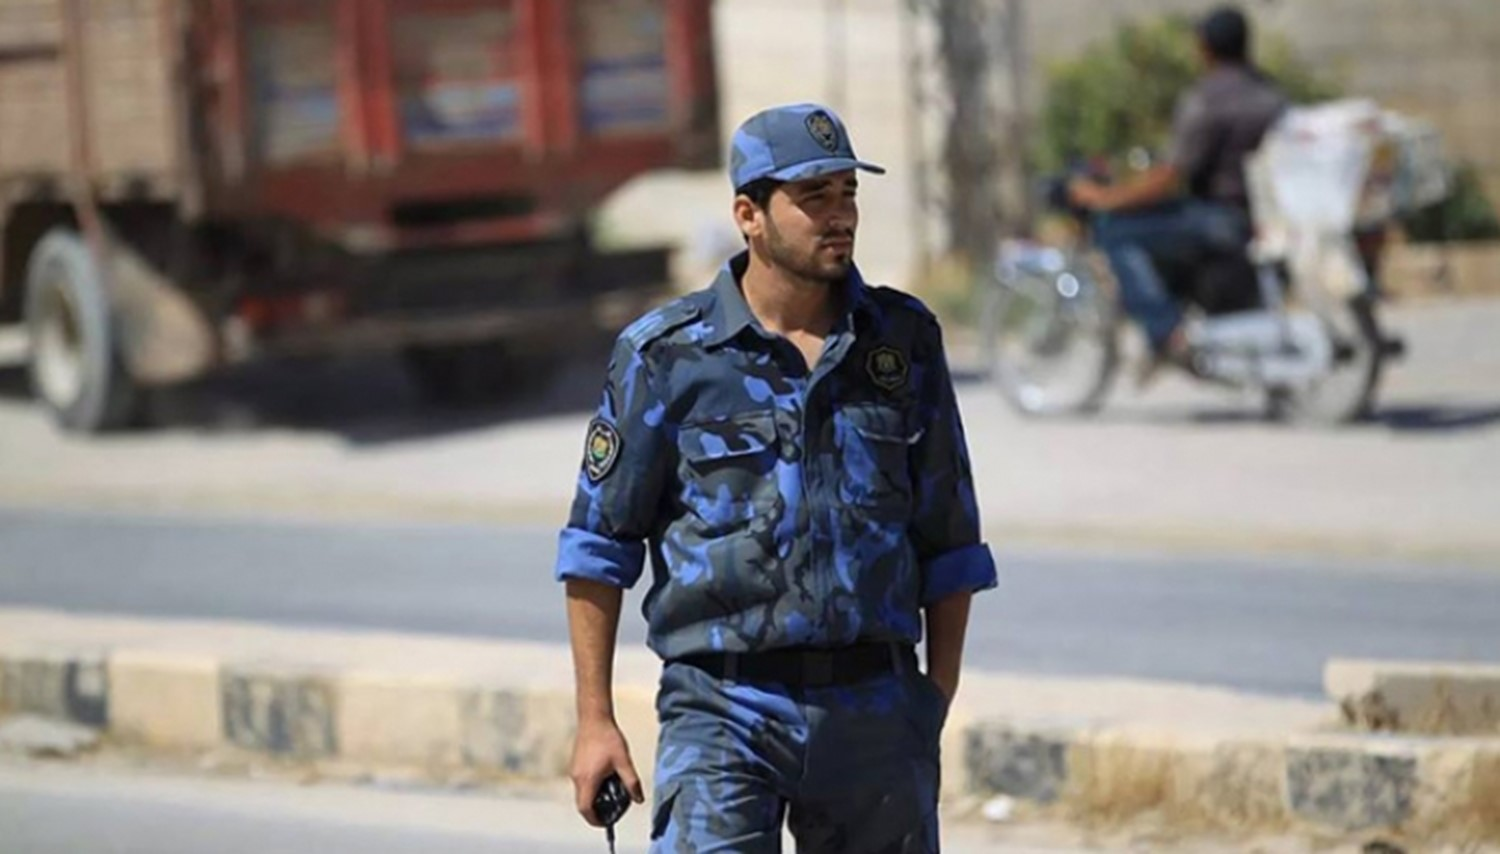 Syrian Free Police Suspended Its Work In Northwestern Syria After Hay'at Tahrir Al-Sham Victory